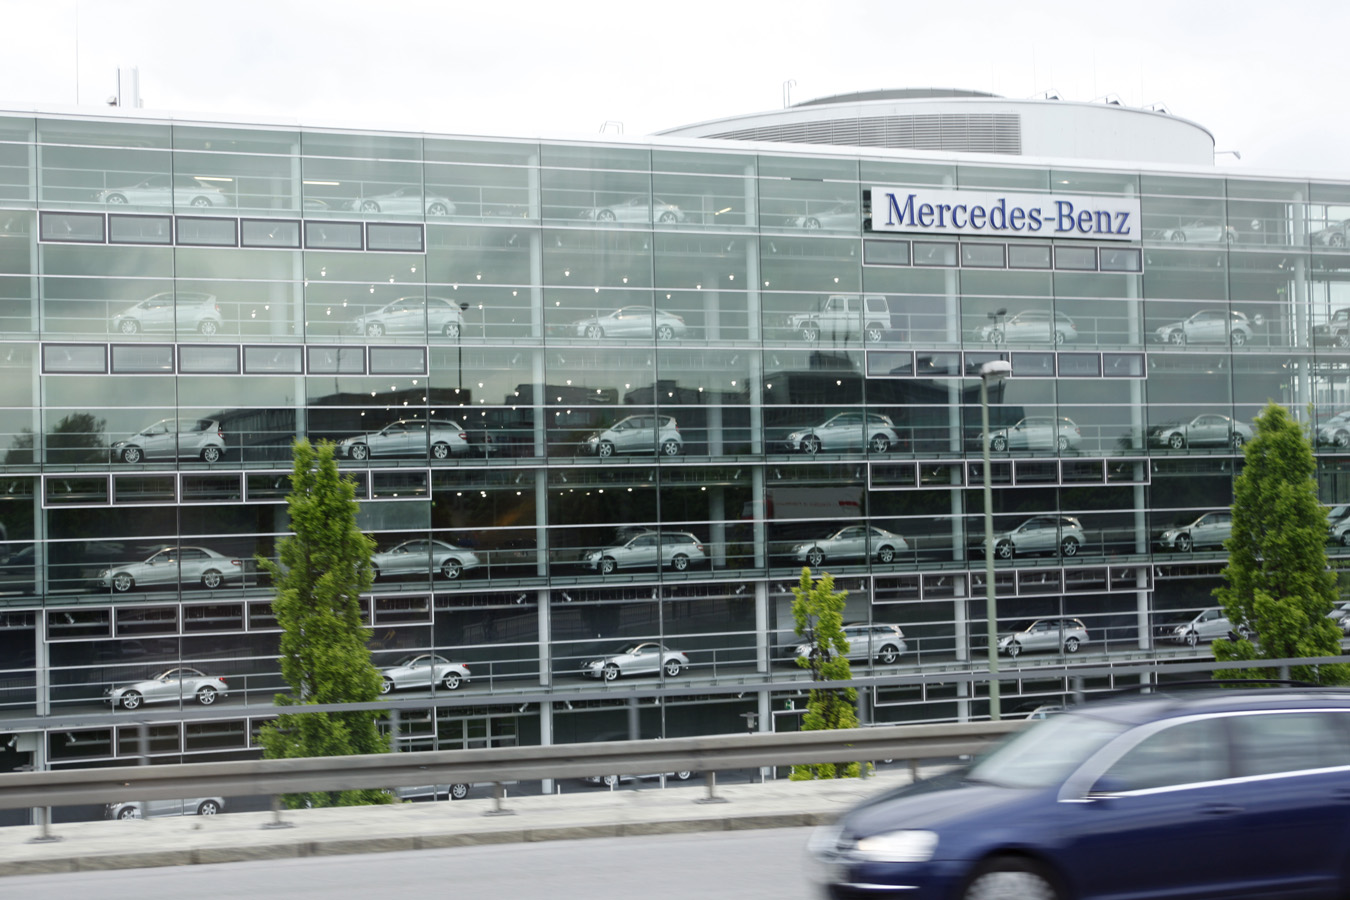 Wanderlust john bragg mercedes benz centre munich germany for Mercedes benz us headquarters